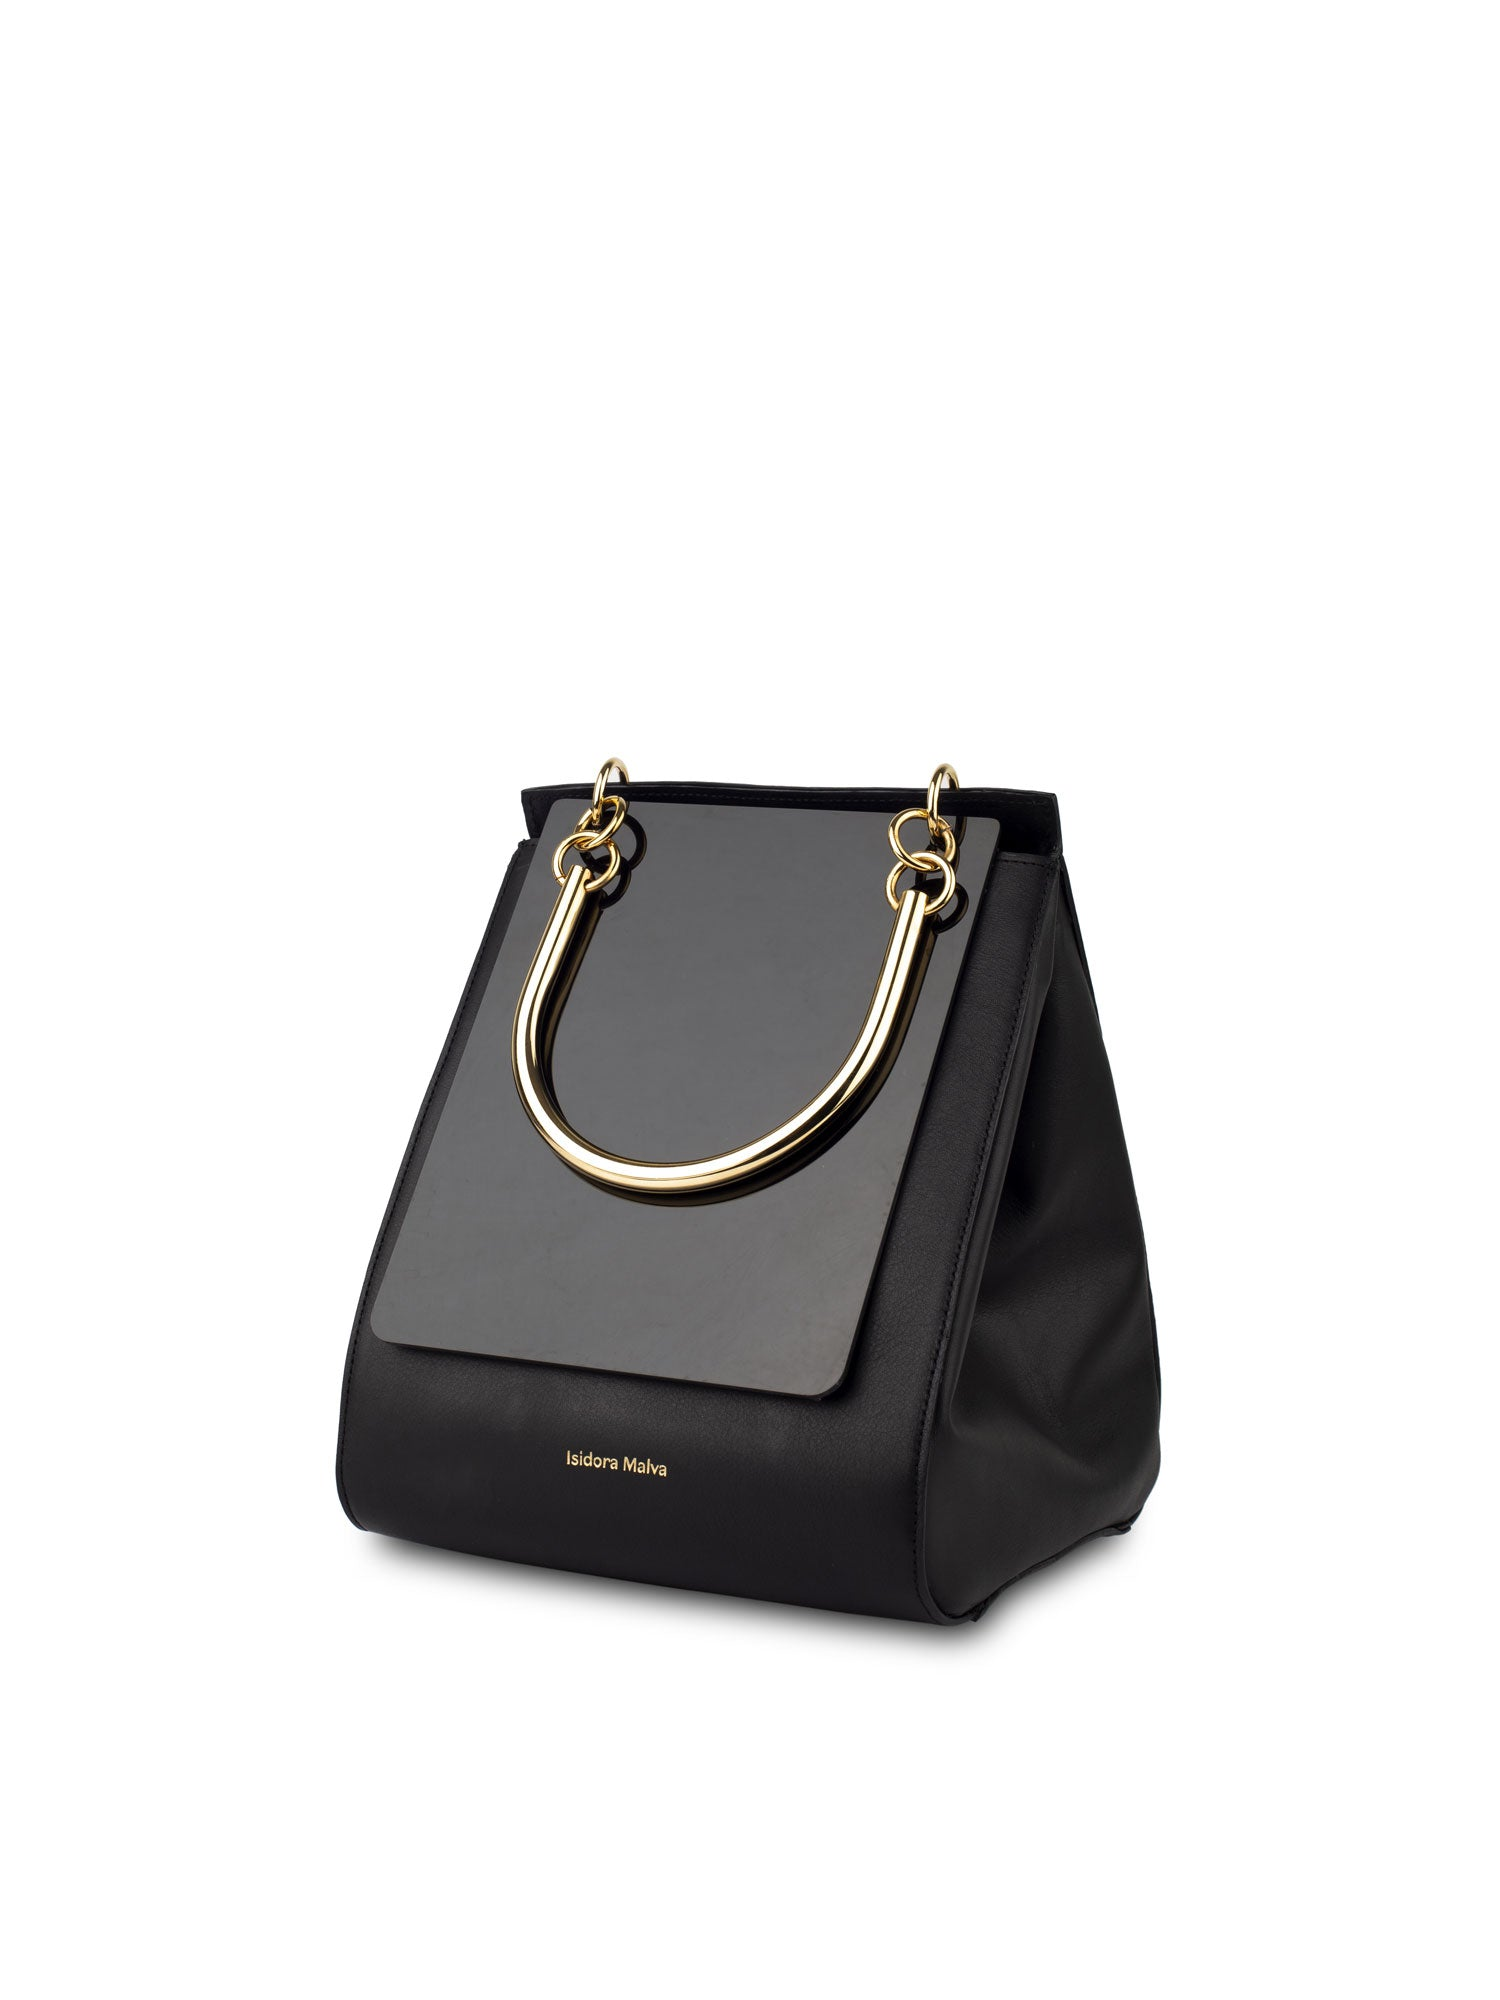 La Virginia Mini Black - Pre-order